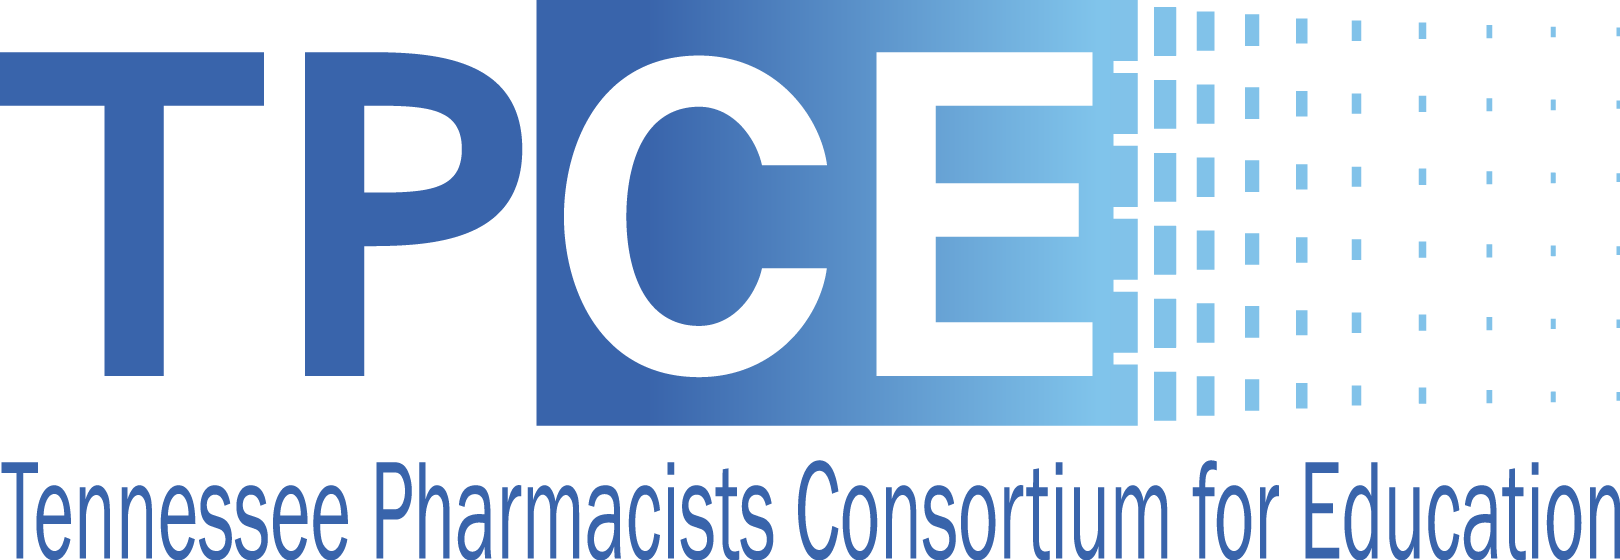 Tennessee Pharmacists Consortium for Education (TPCE)